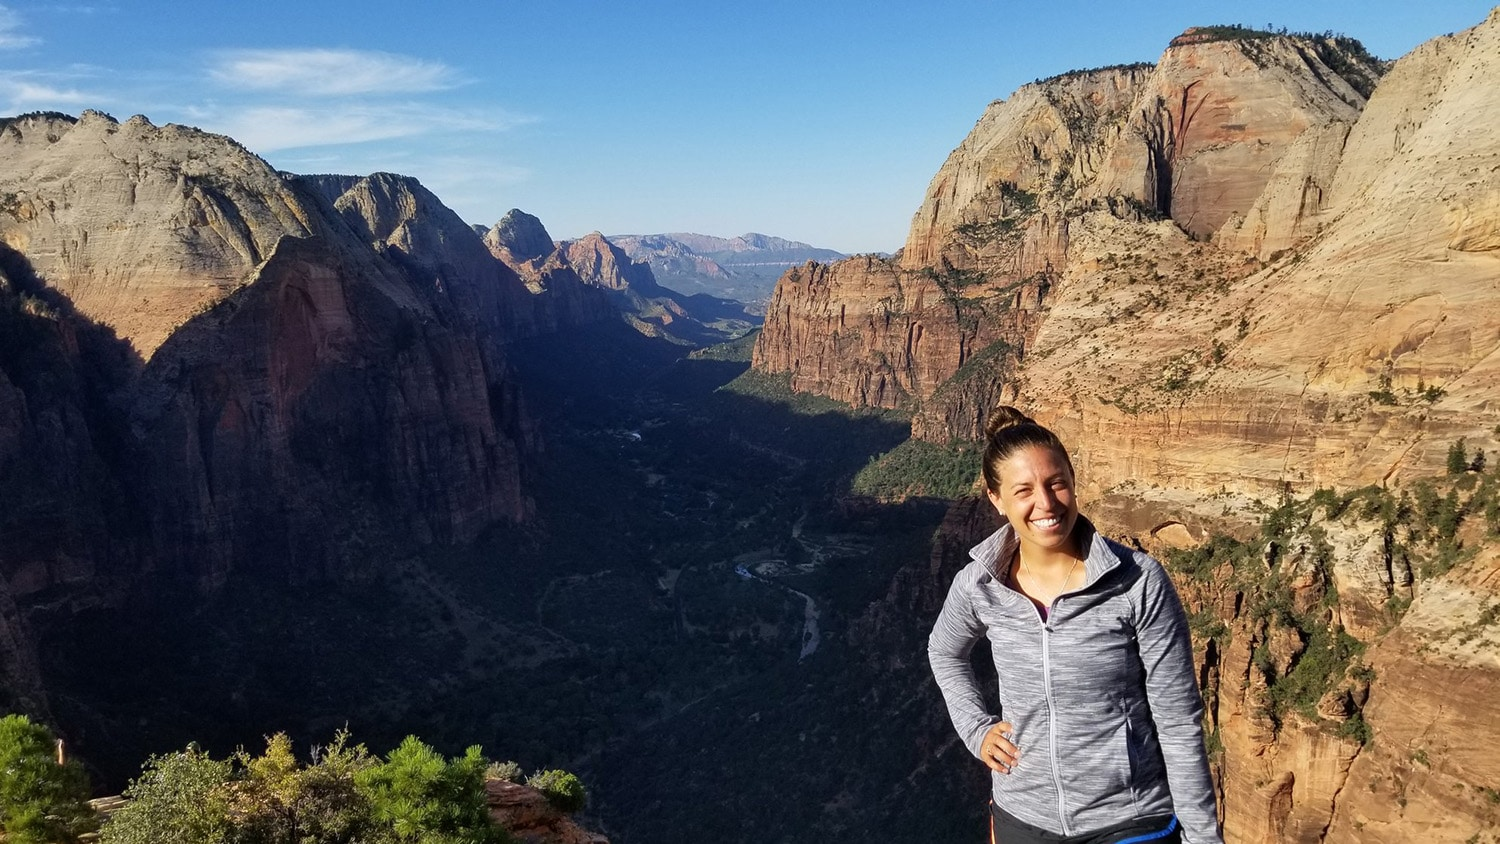 Rachel Atkins in Zion National Park